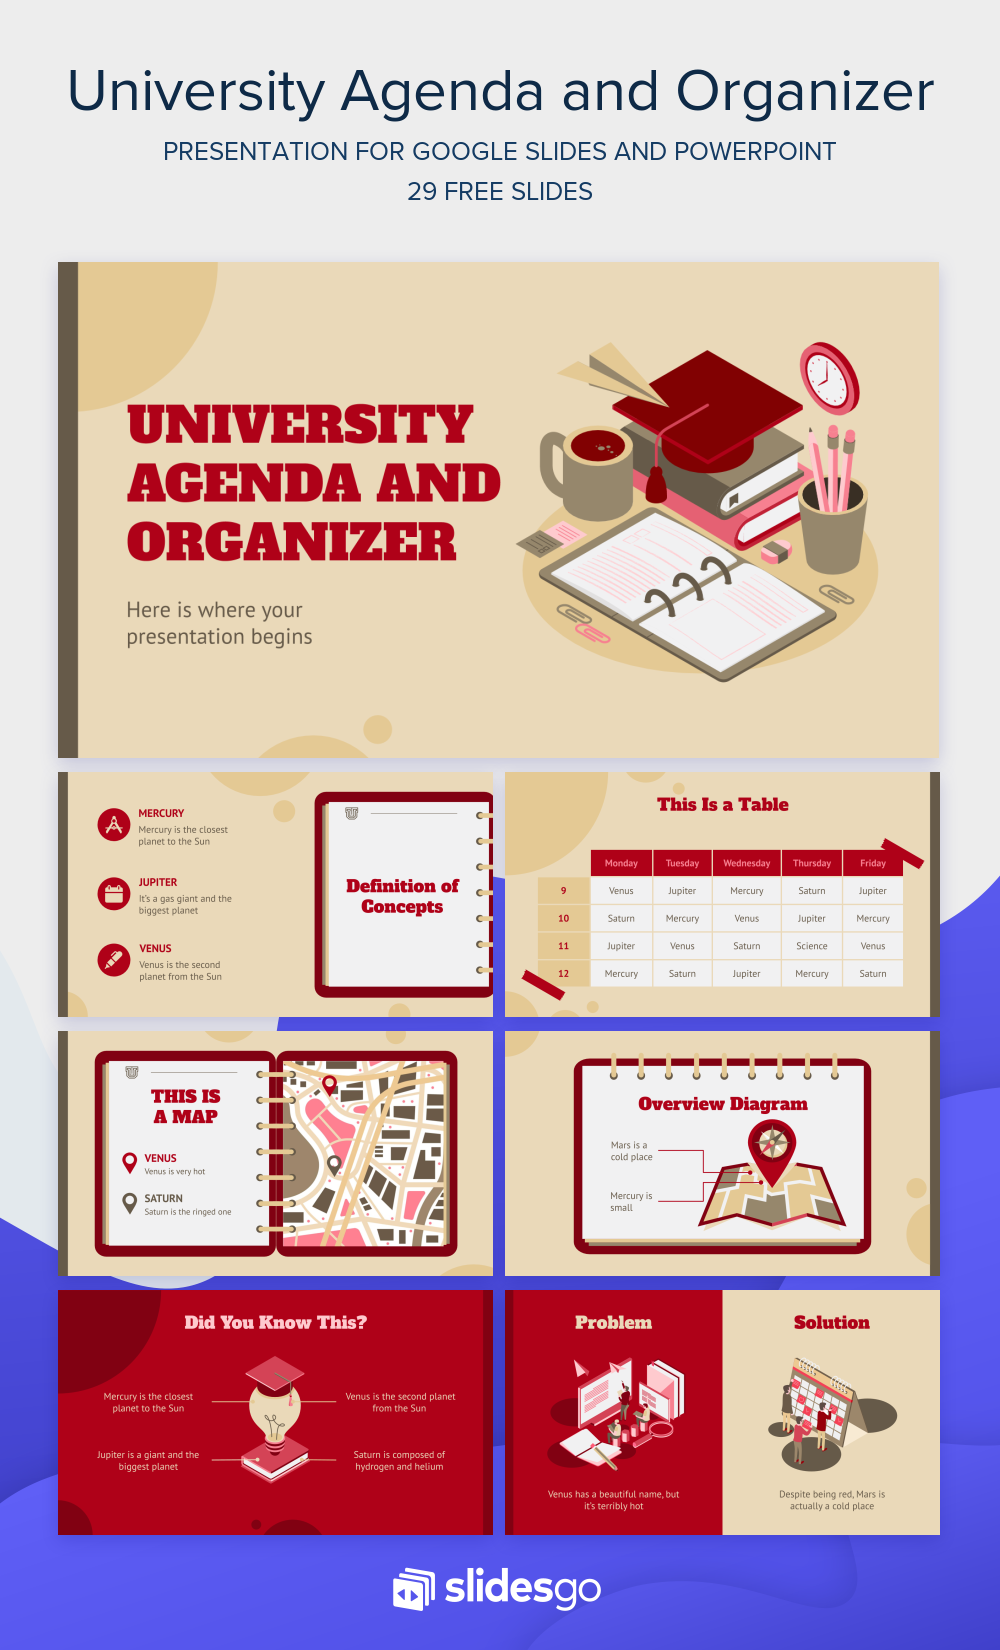 Make The Most Of Your Day With This University Agenda Organizer Prese Powerpoint Design Templates Powerpoint Presentation Design Presentation Design Template